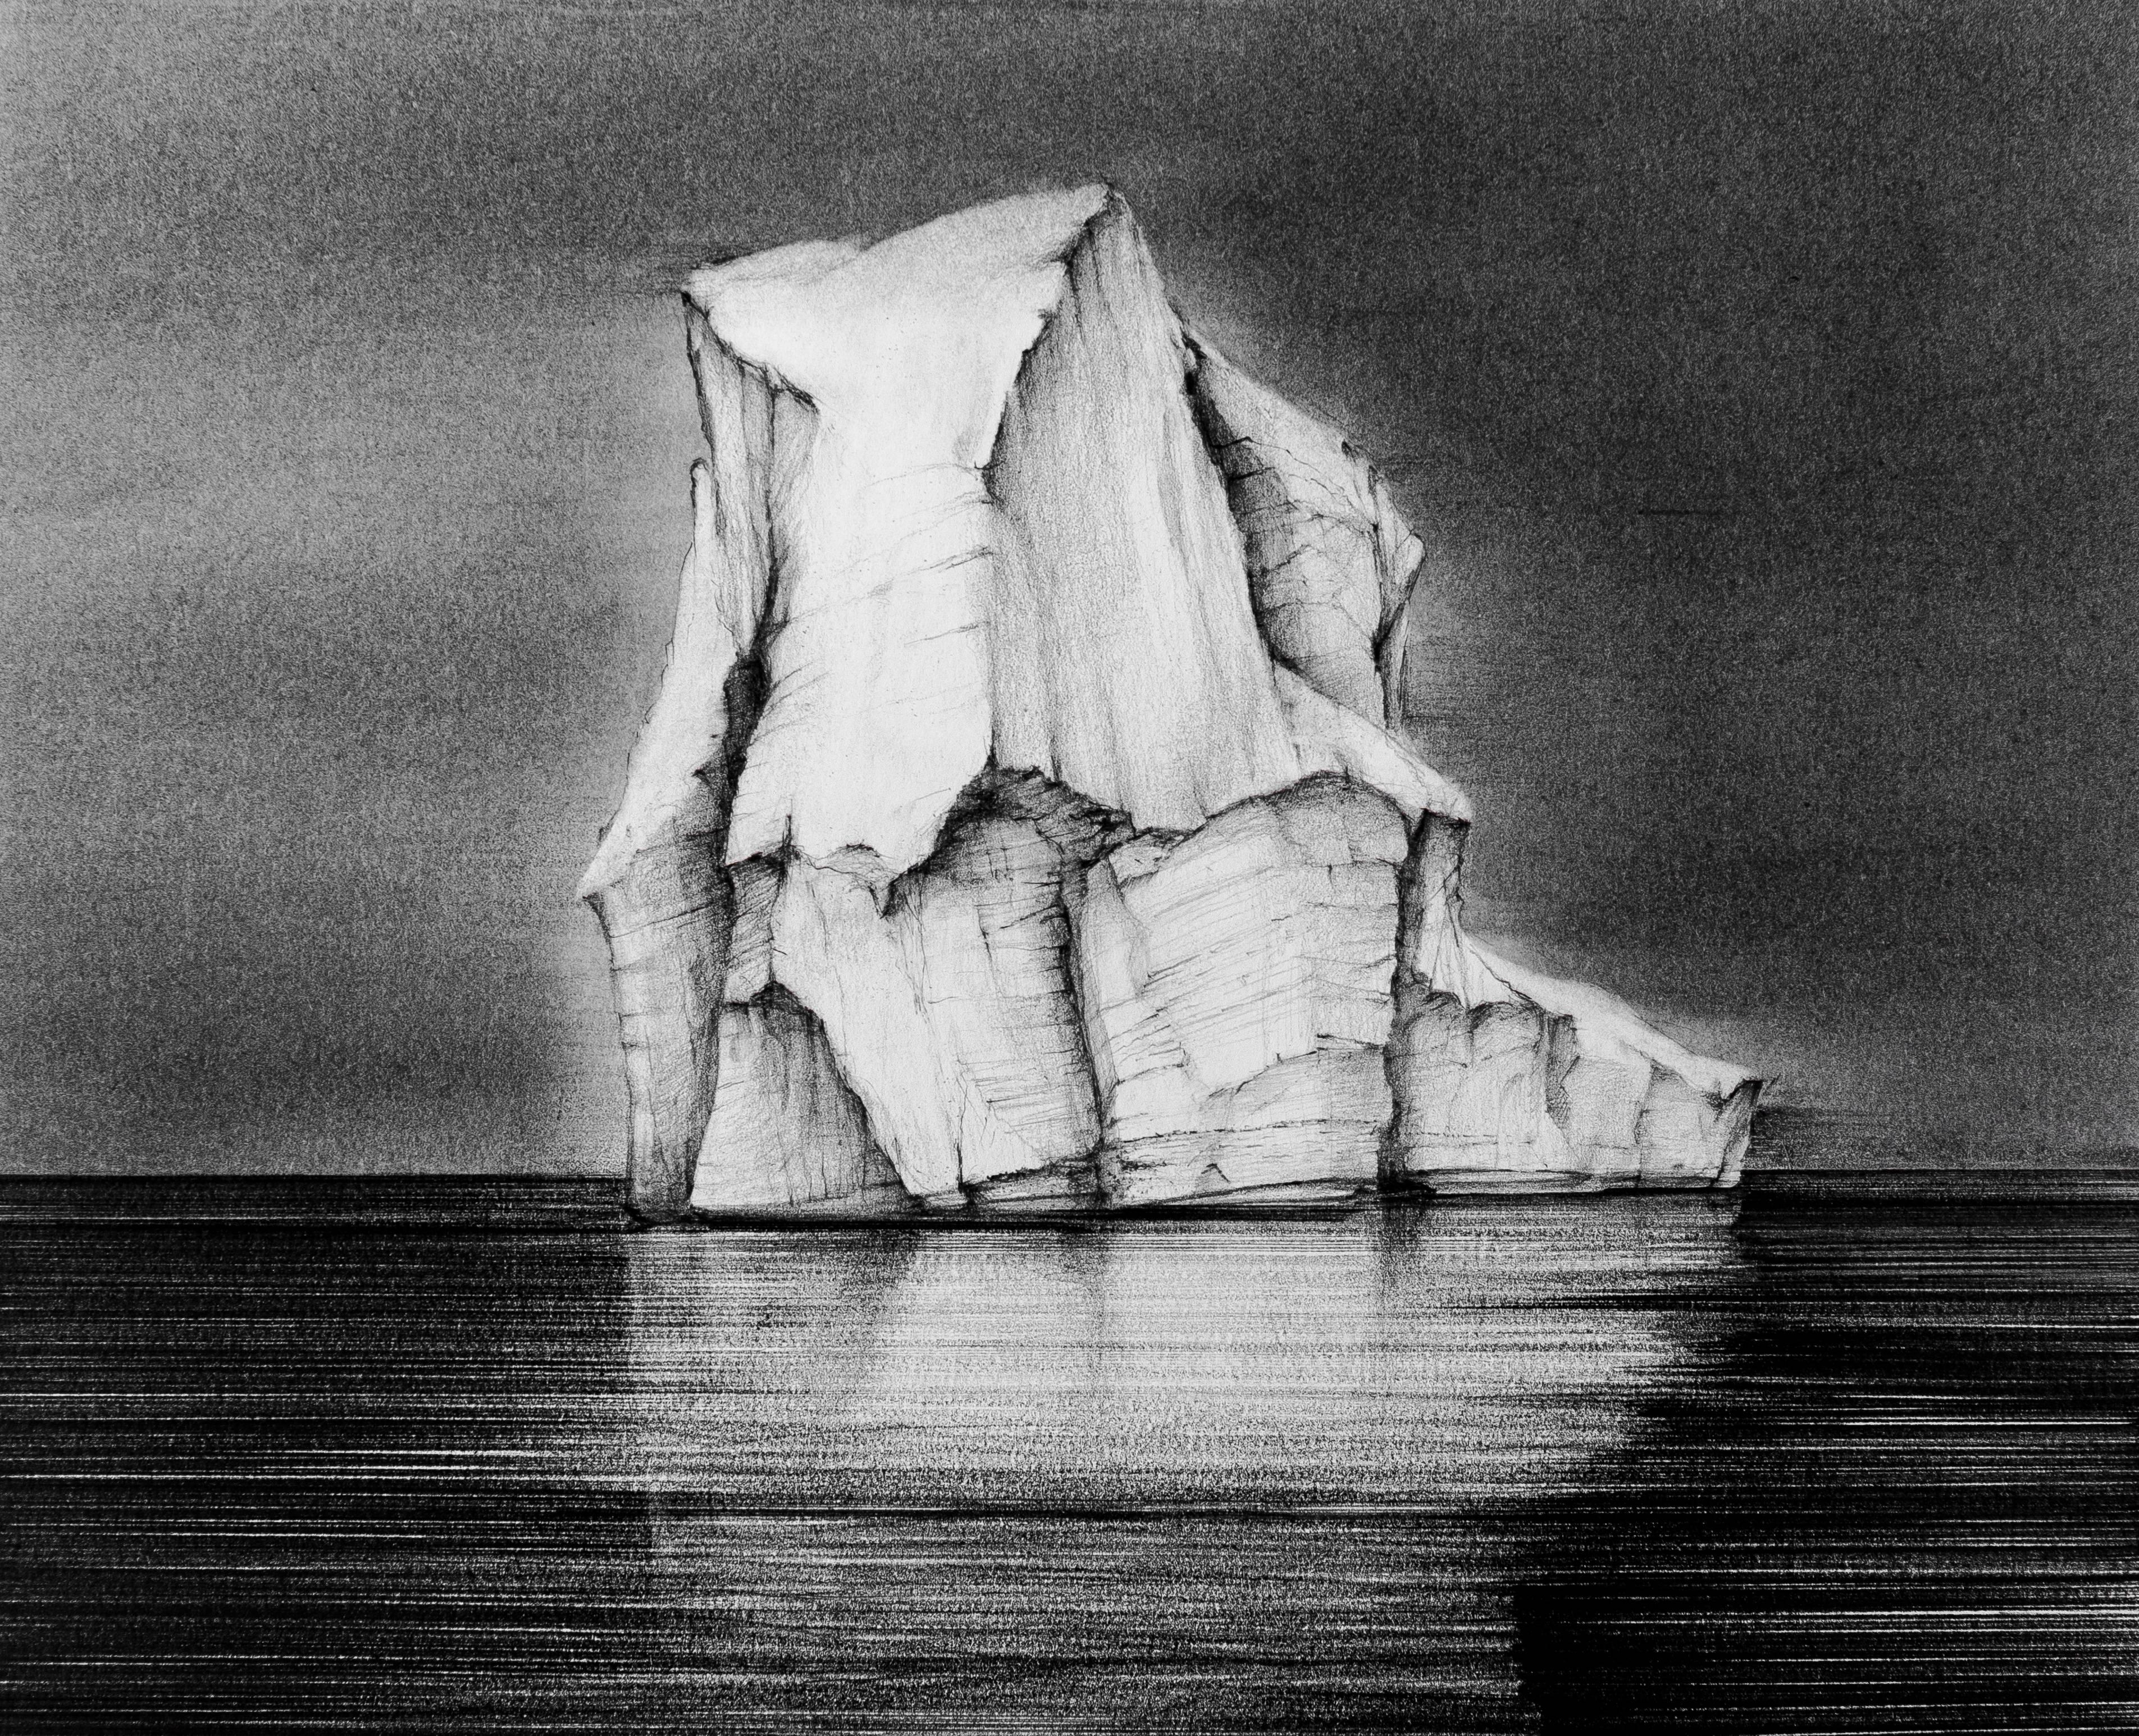 Iceberg Drawing 3: Black and White Landscape Drawing of Iceberg in Water, Framed